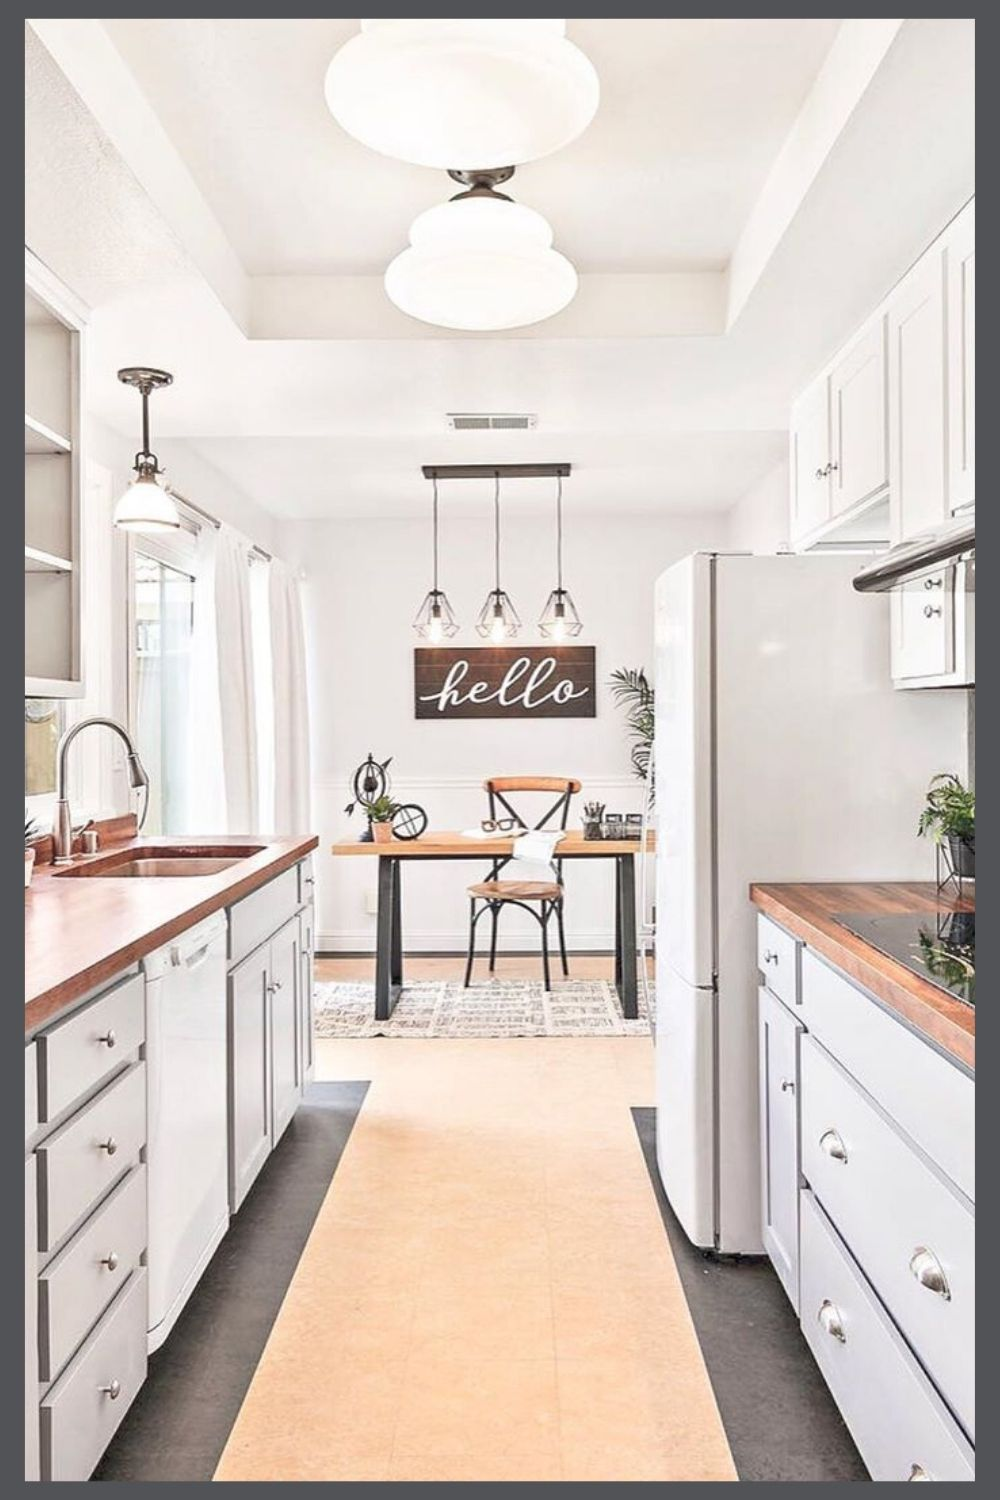 Galley Kitchen Remodel Ideas Small Galley Kitchen Design Makeovers And Plans In 2020 Galley Kitchen Remodel Small Galley Kitchens Small Galley Kitchen Designs